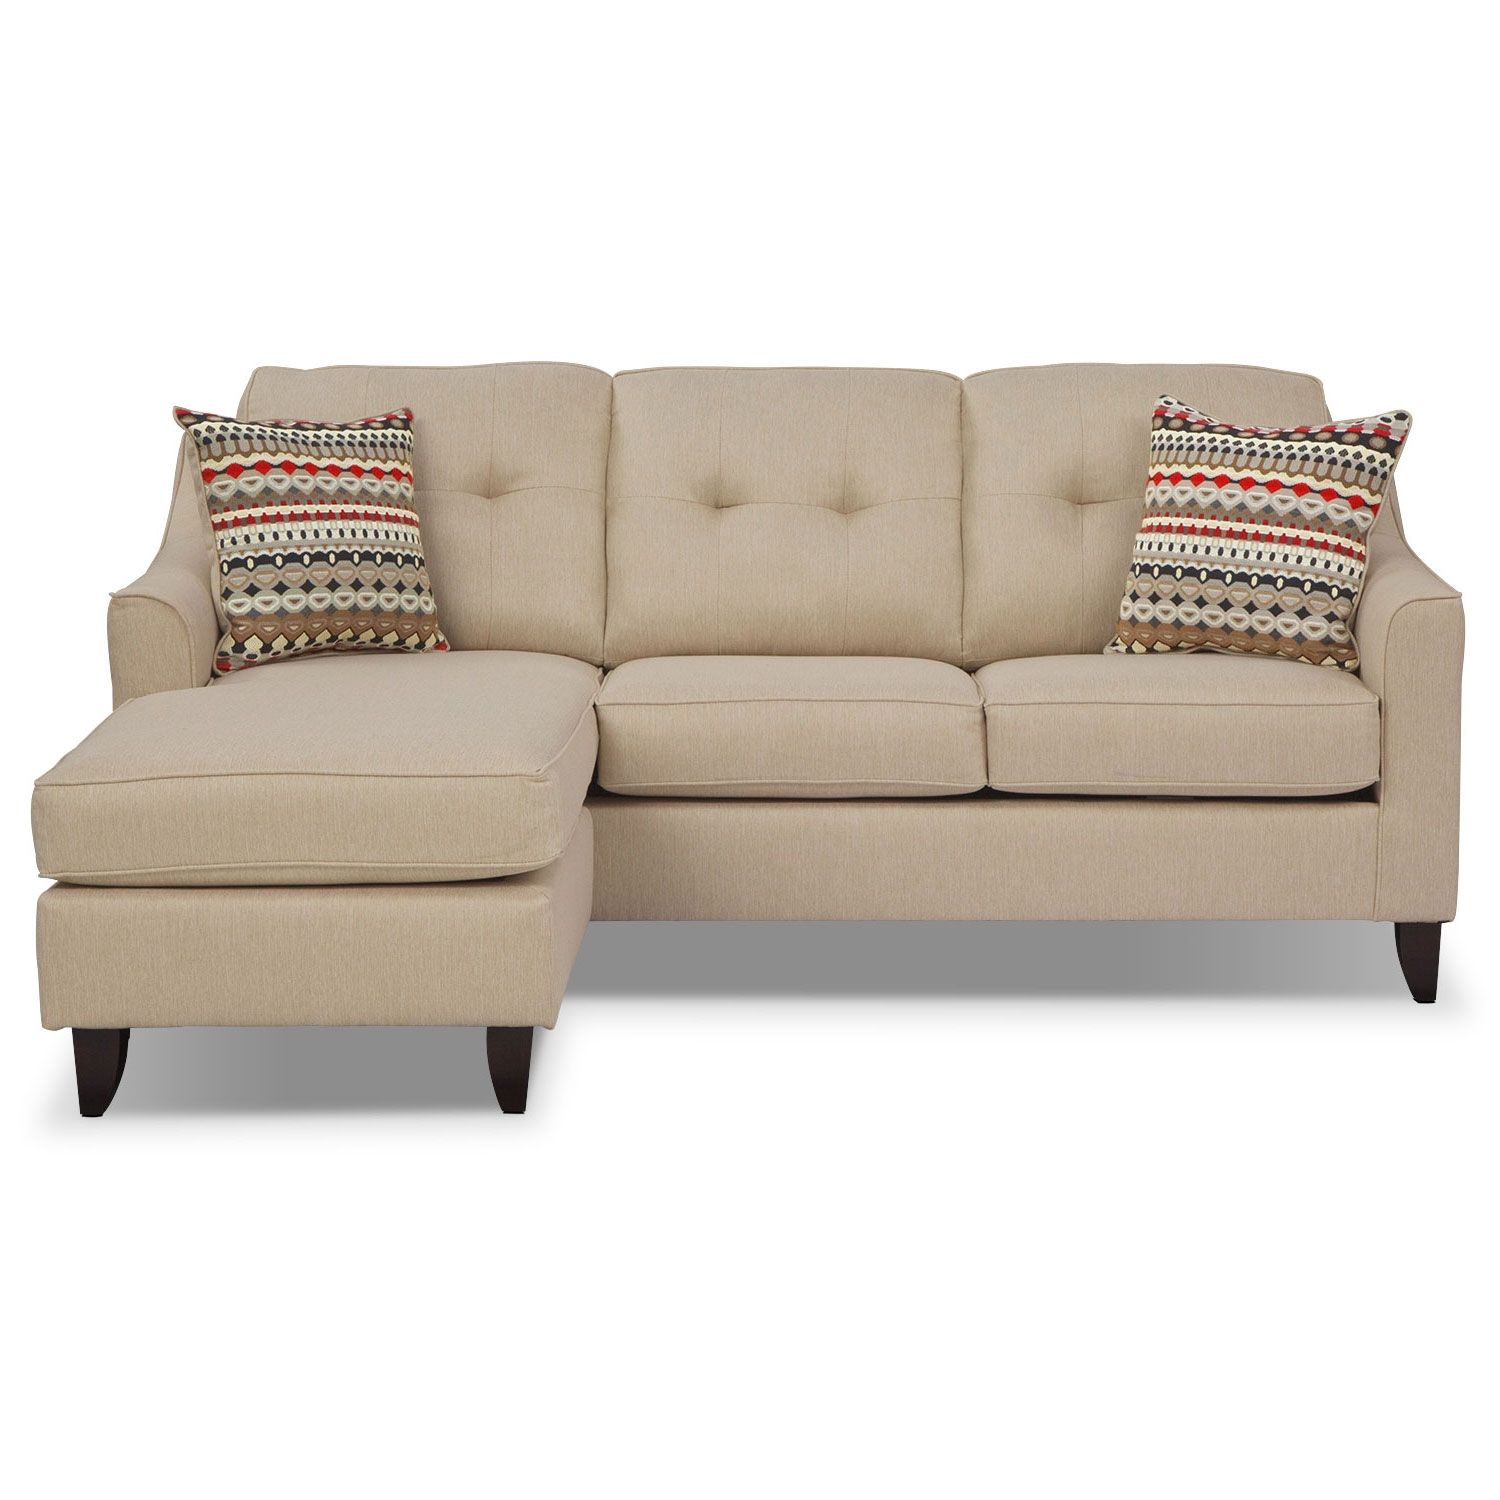 Marco Cream Chaise Sofa Value City